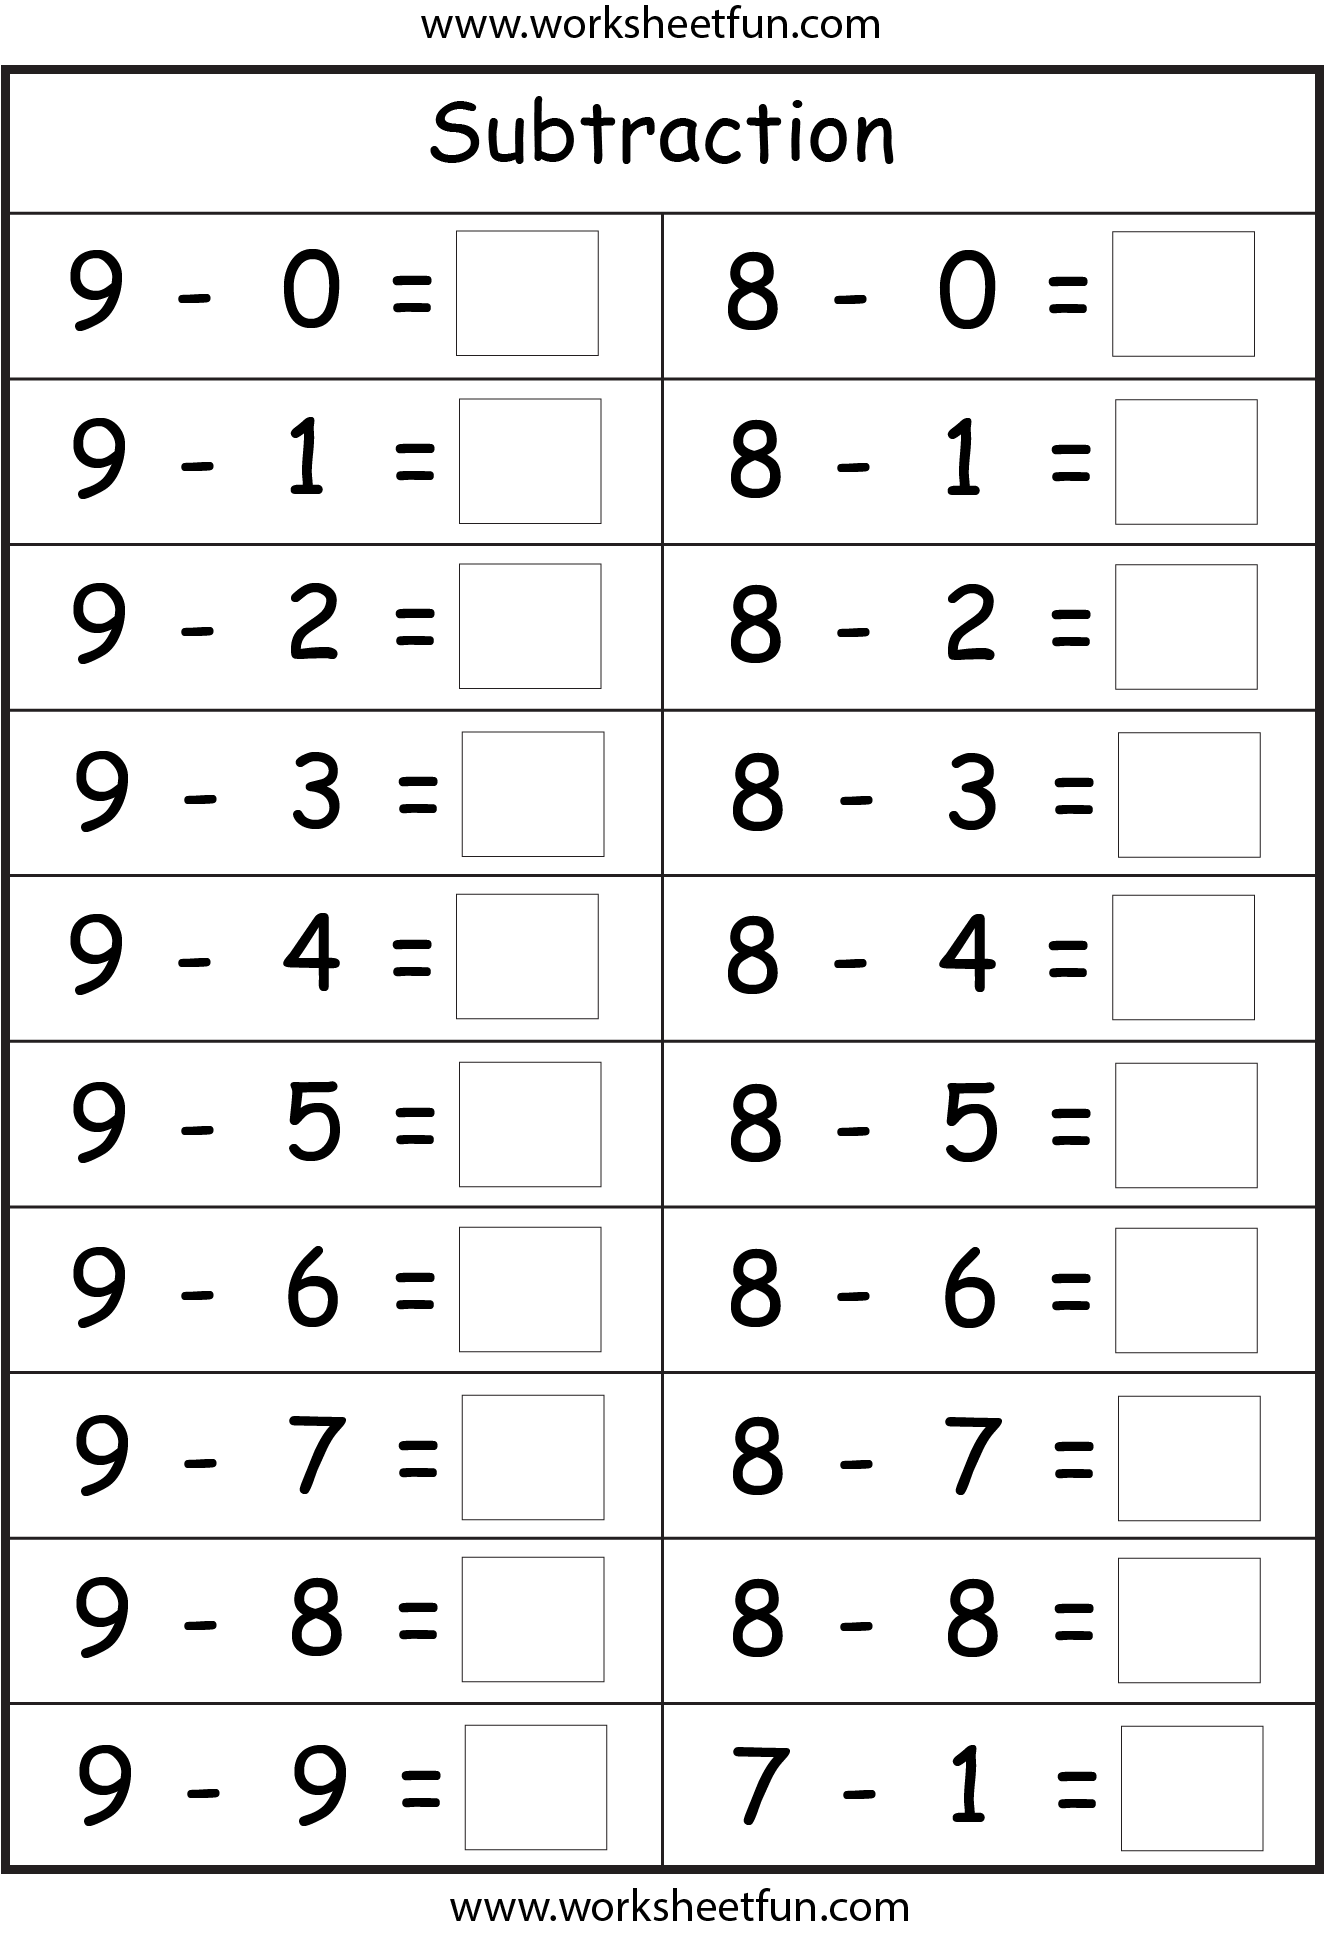 Subtraction 4 Worksheets Printable Worksheets – Subtraction Worksheets Kindergarten